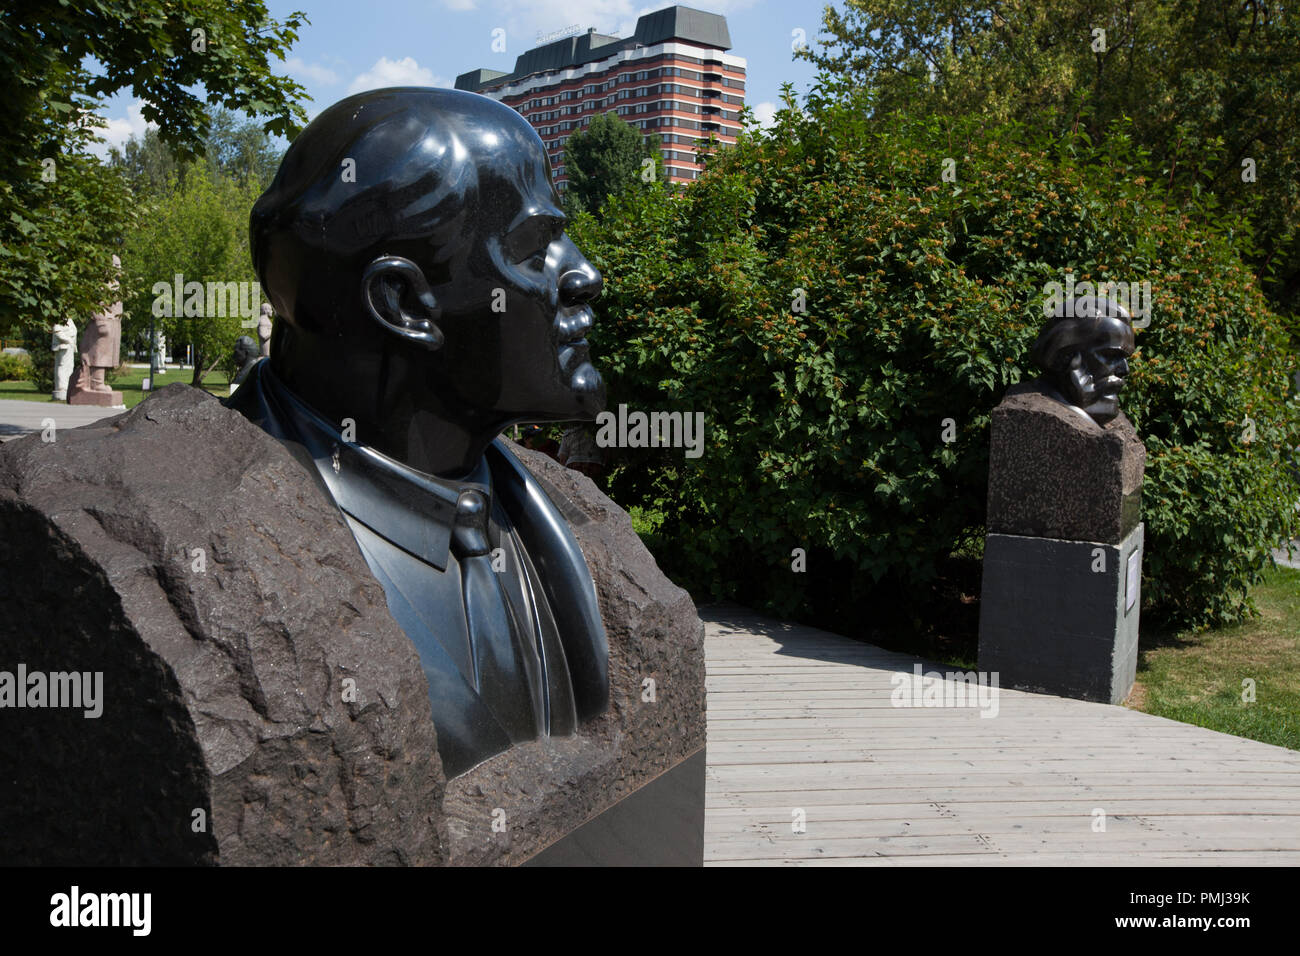 Lenin in Muzeum Park of Moscow, Russia - Stock Image